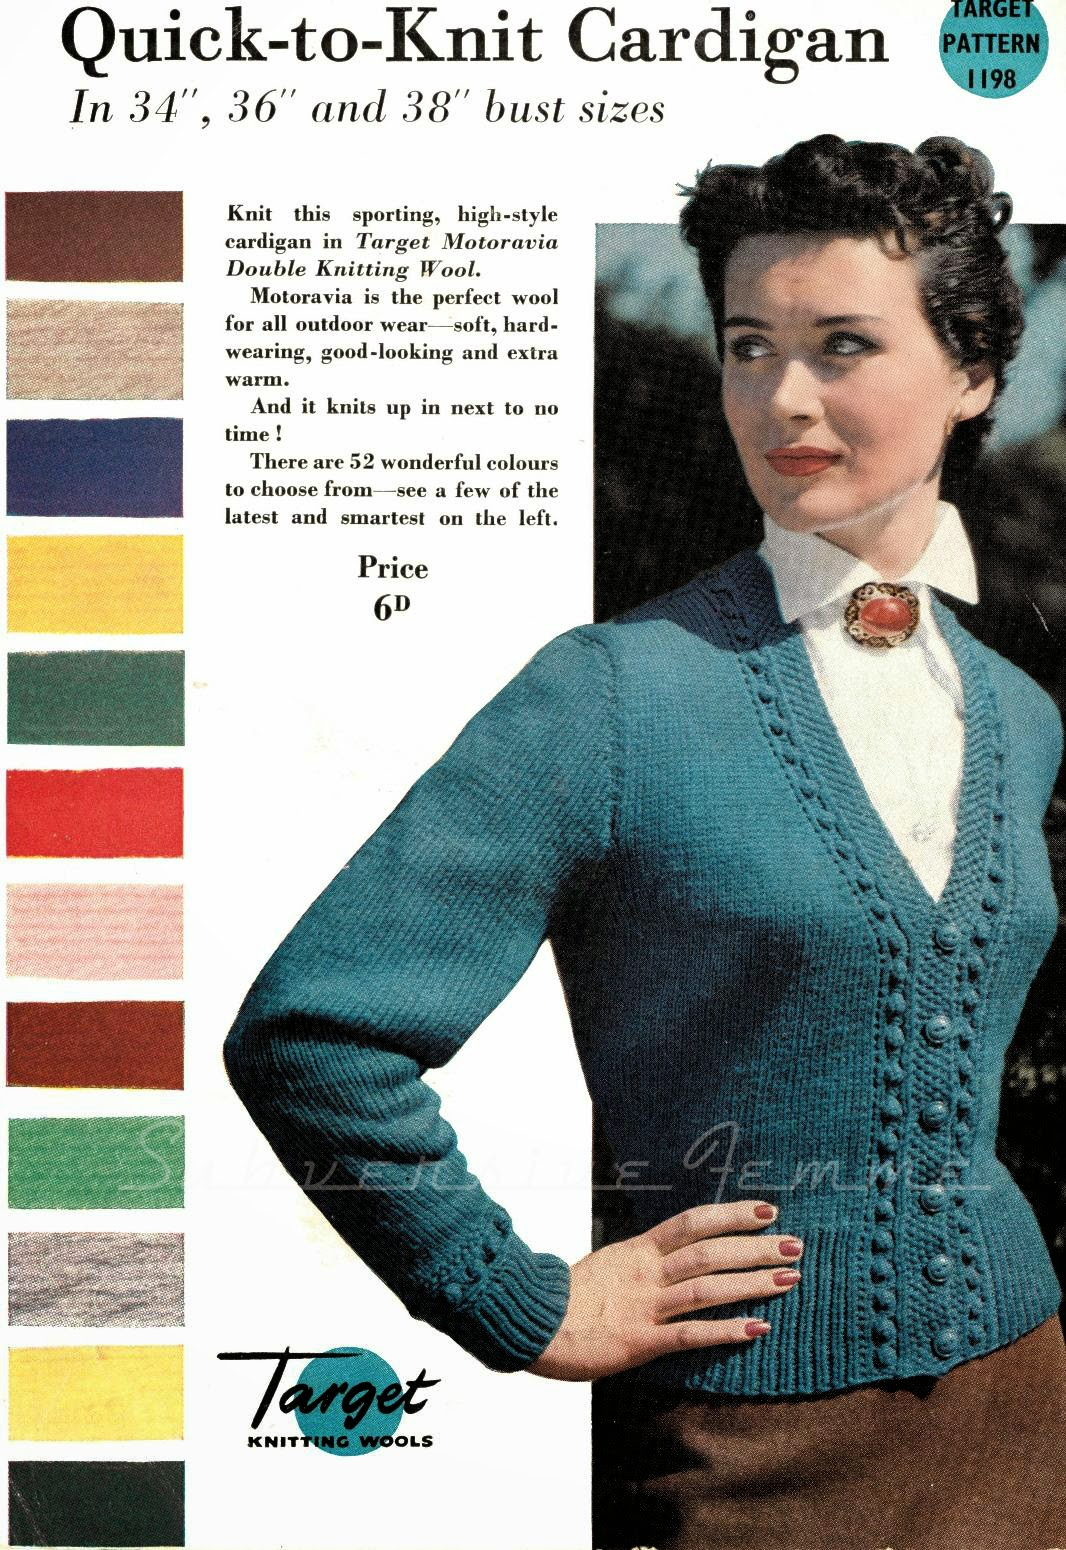 Targer quick-to-knit cardigan 1950's knitting pattern